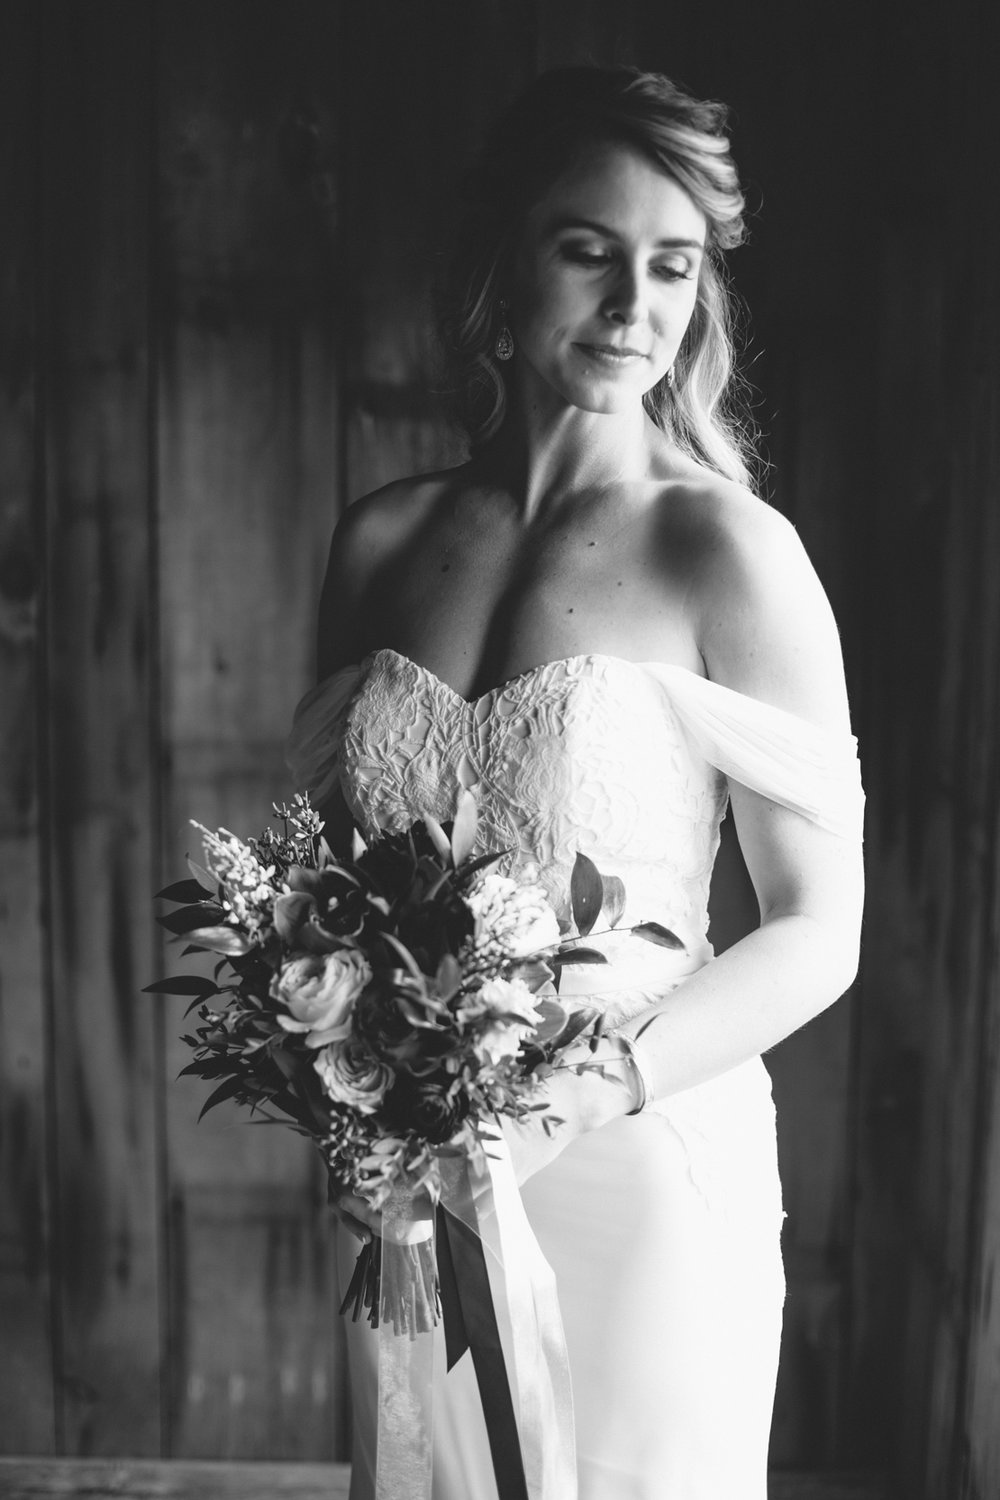 GrainandCompass_DanielChristineWedding_Blog-49.jpg